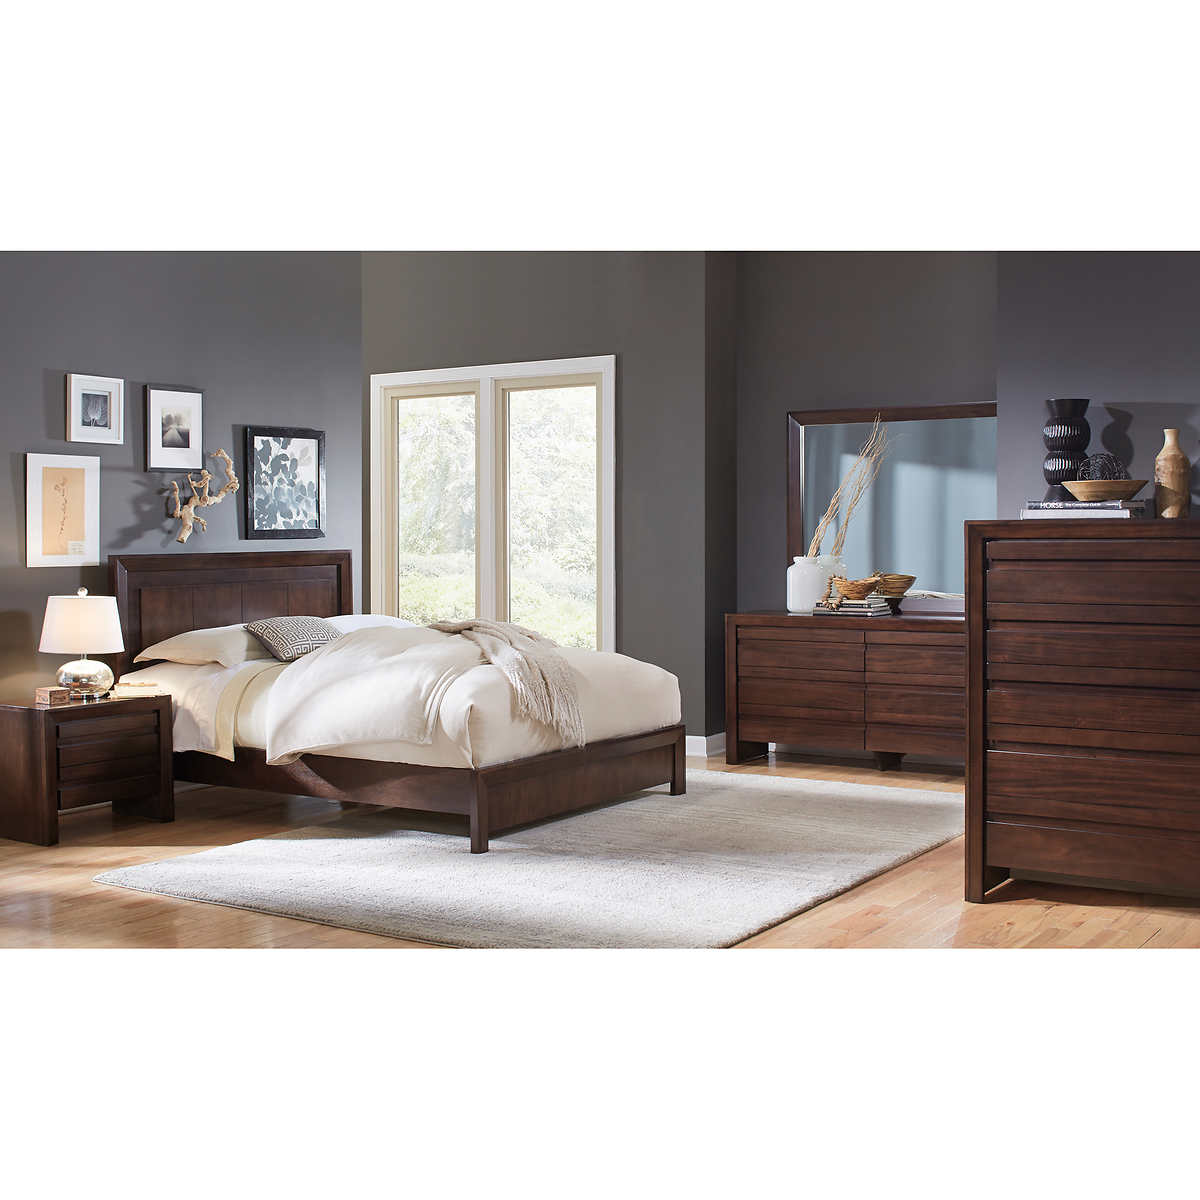 cal king bedroom sets  costco - wakefield piece cal king bedroom set